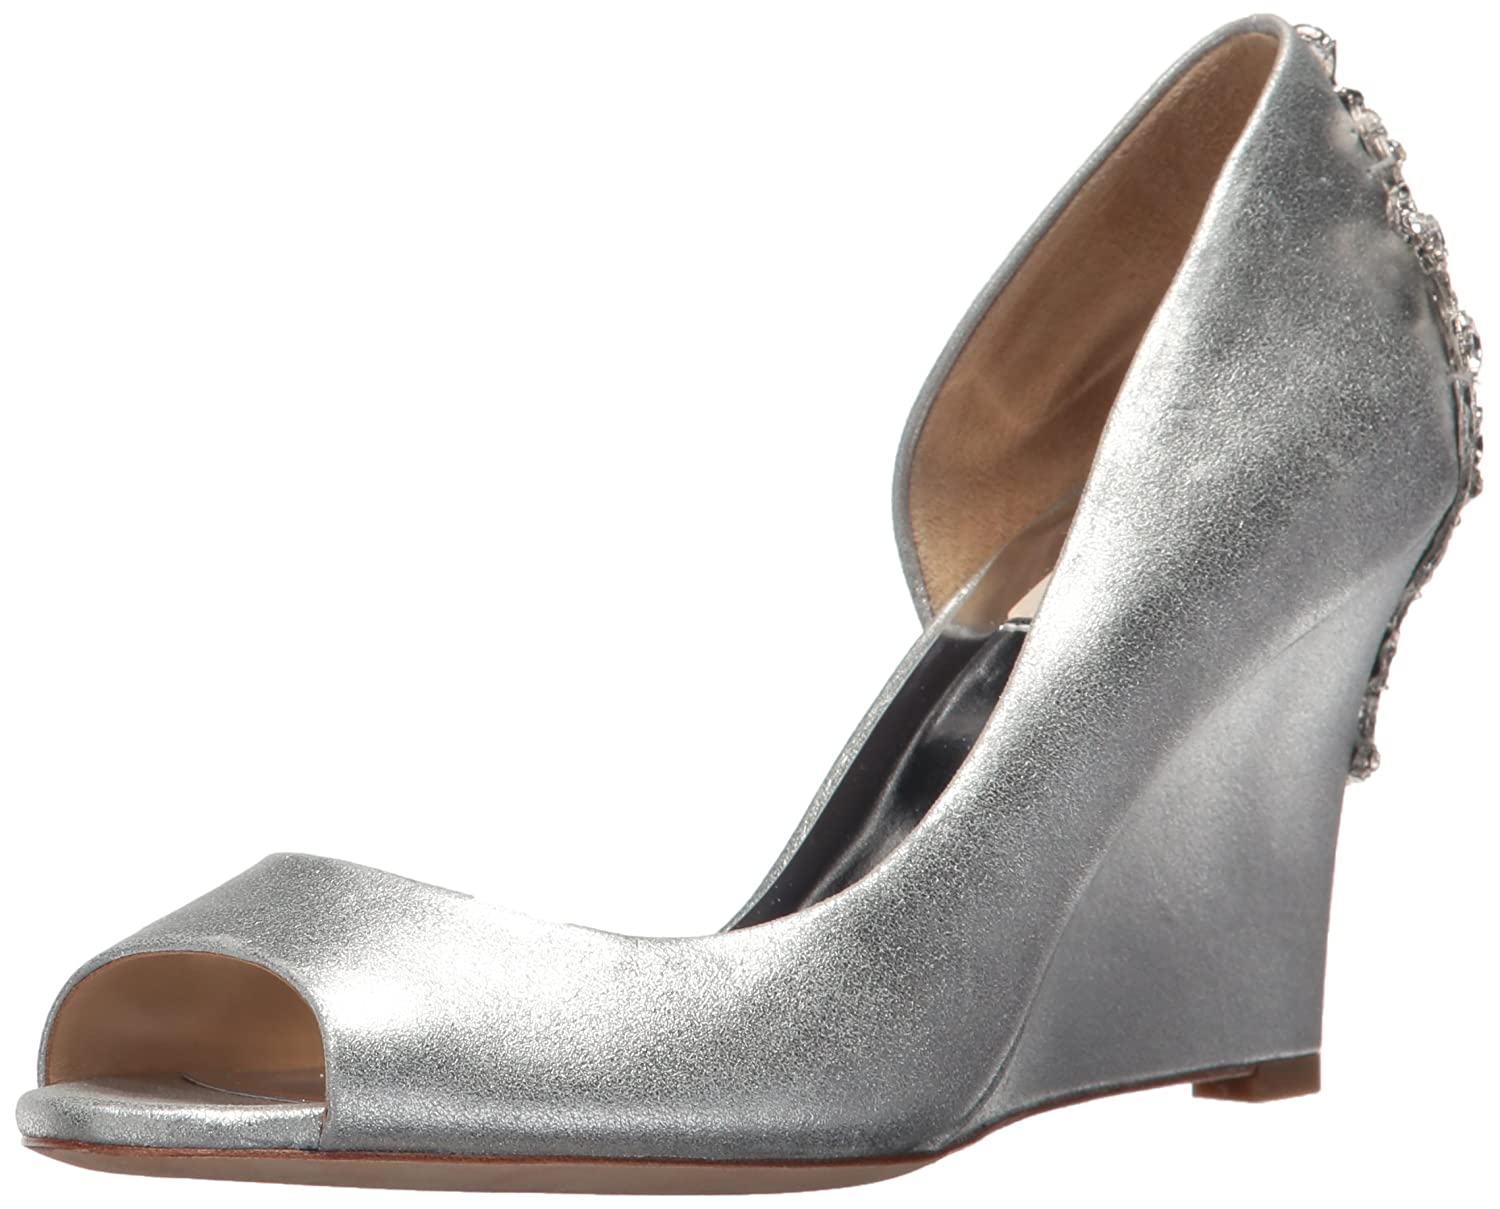 Badgley Mischka Women's Meagan II Pump B07352PNBX 8.5 B(M) US|Silver_44